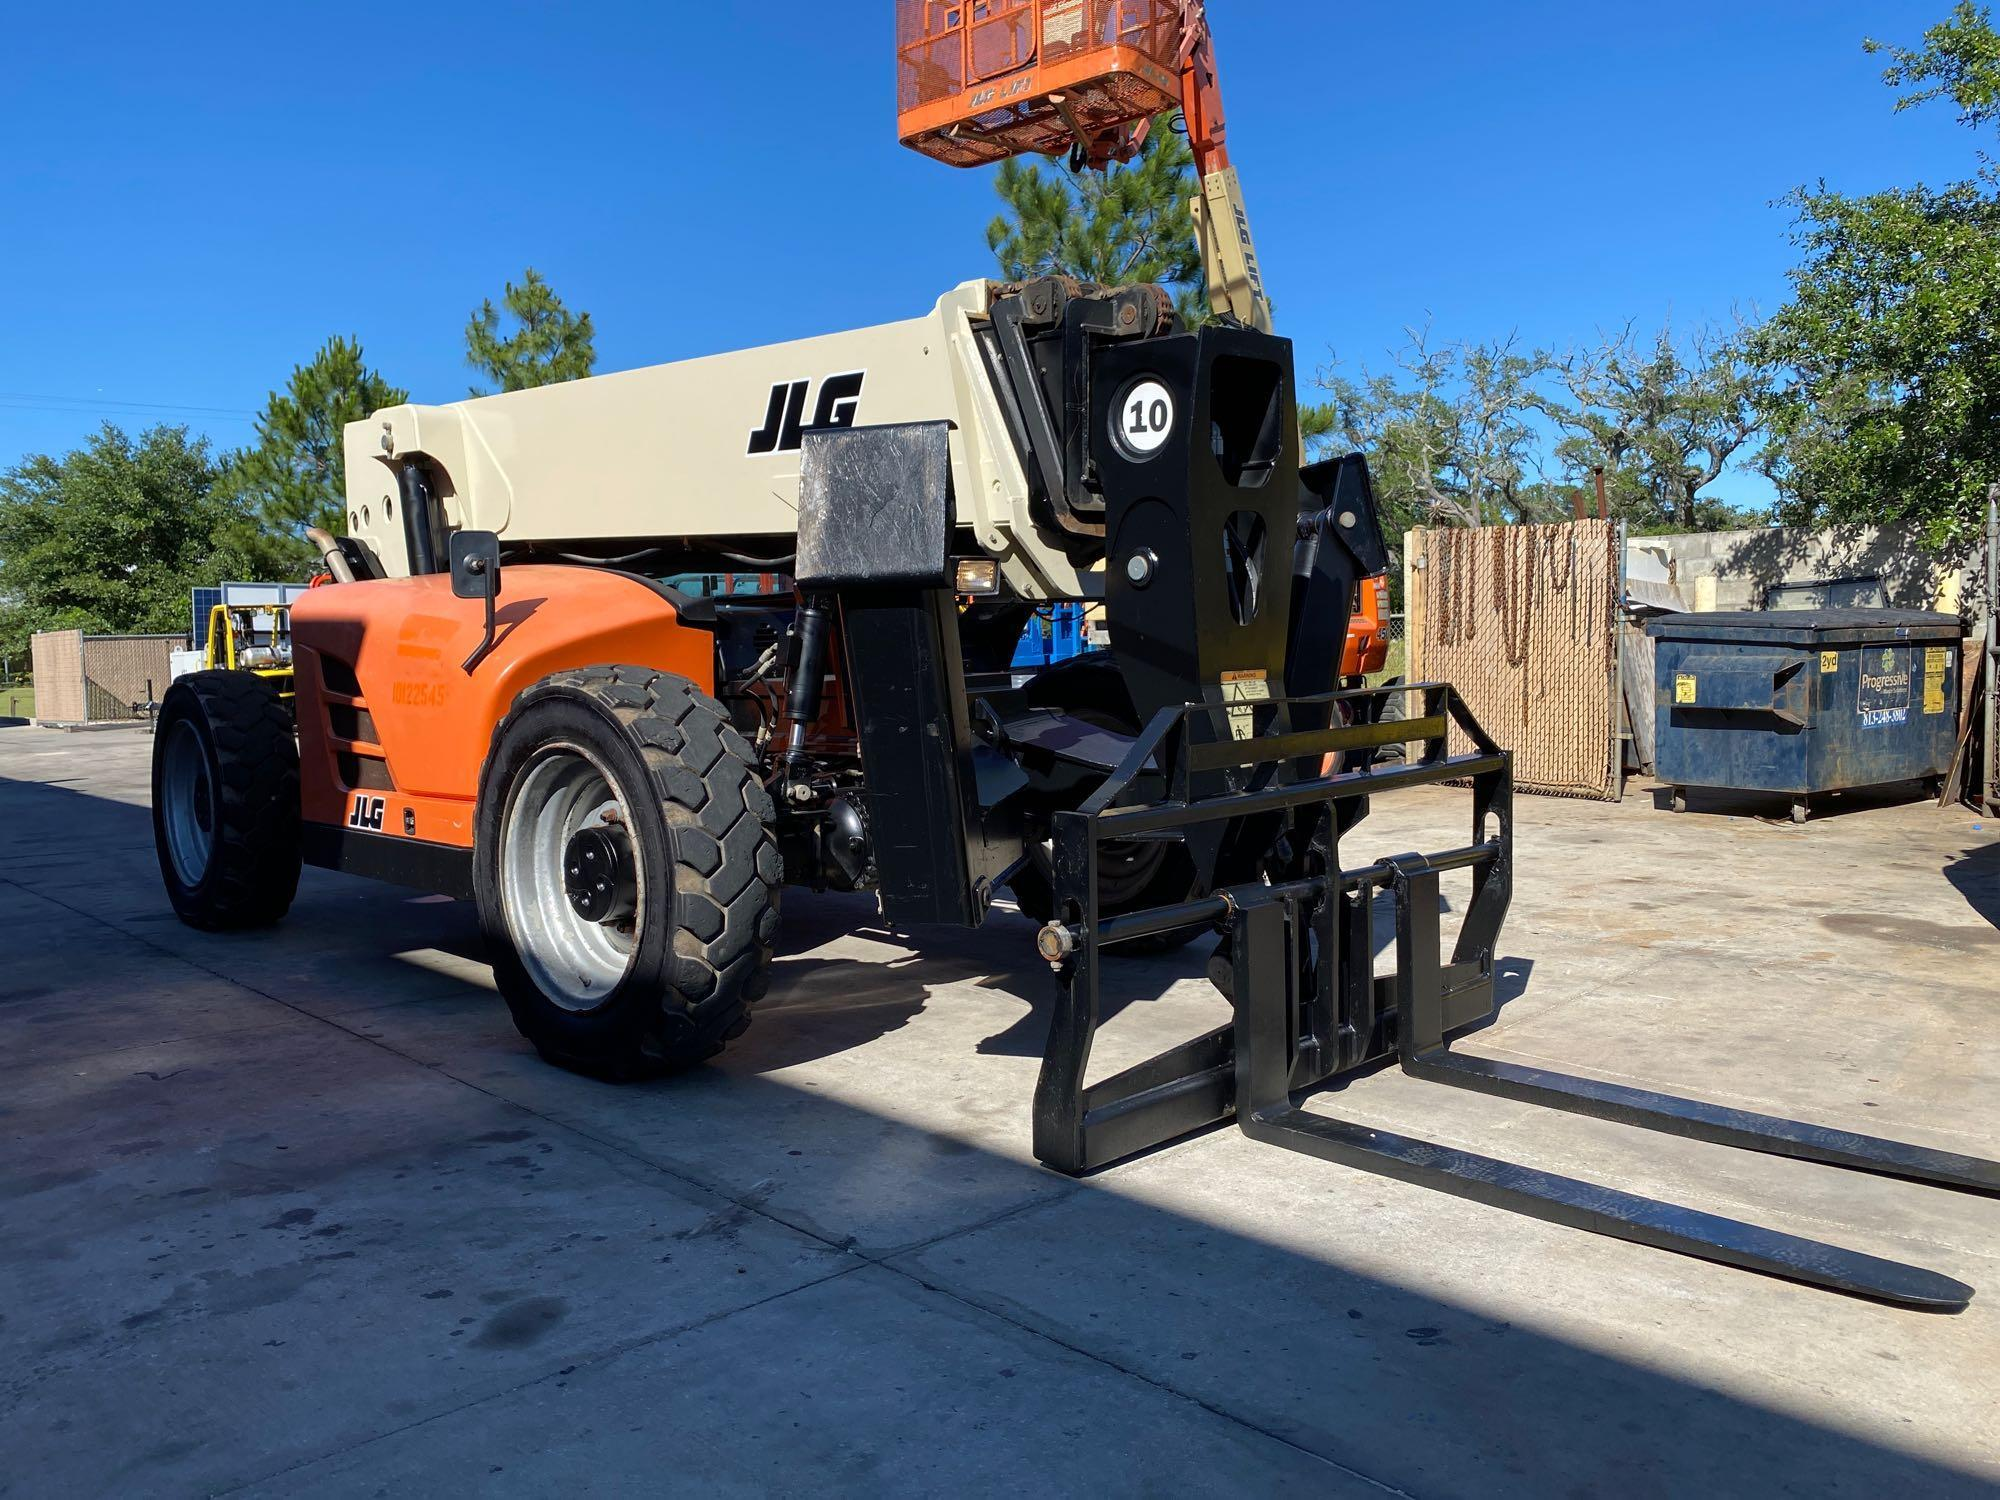 2013 JLG TELESCOPIC FORKLIFT MODEL G10-55A, 10,000 LB CAPACITY, OUTRIGGERS, 5,717.7 HOURS SHOWING, C - Image 15 of 16